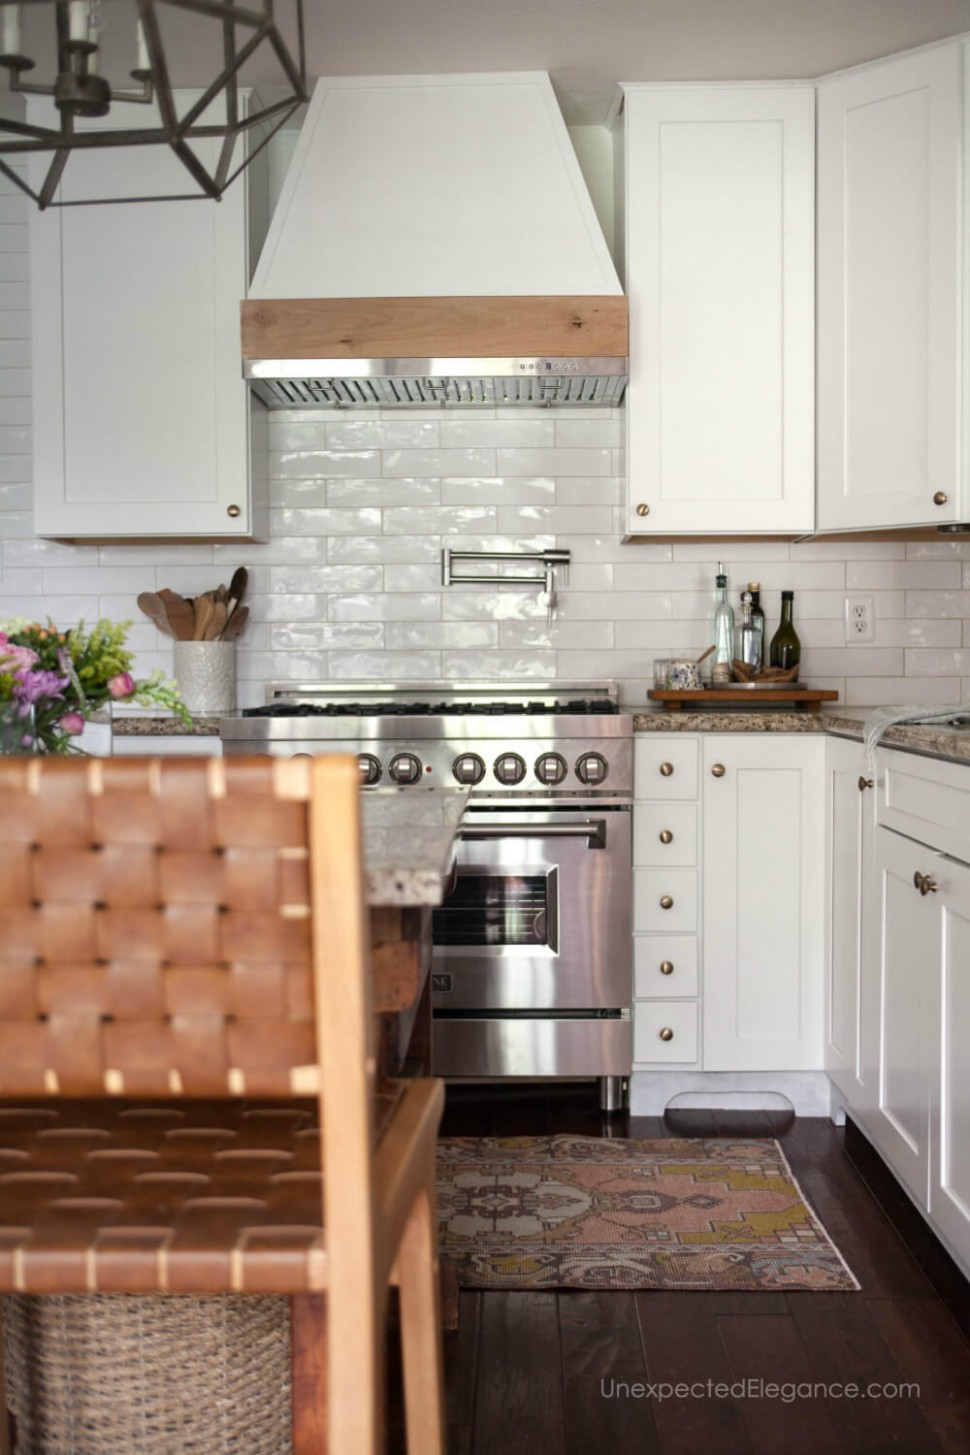 8 Ways to Update Kitchen Cabinets  Unexpected Elegance - 1950S Kitchen Cabinets Corbel